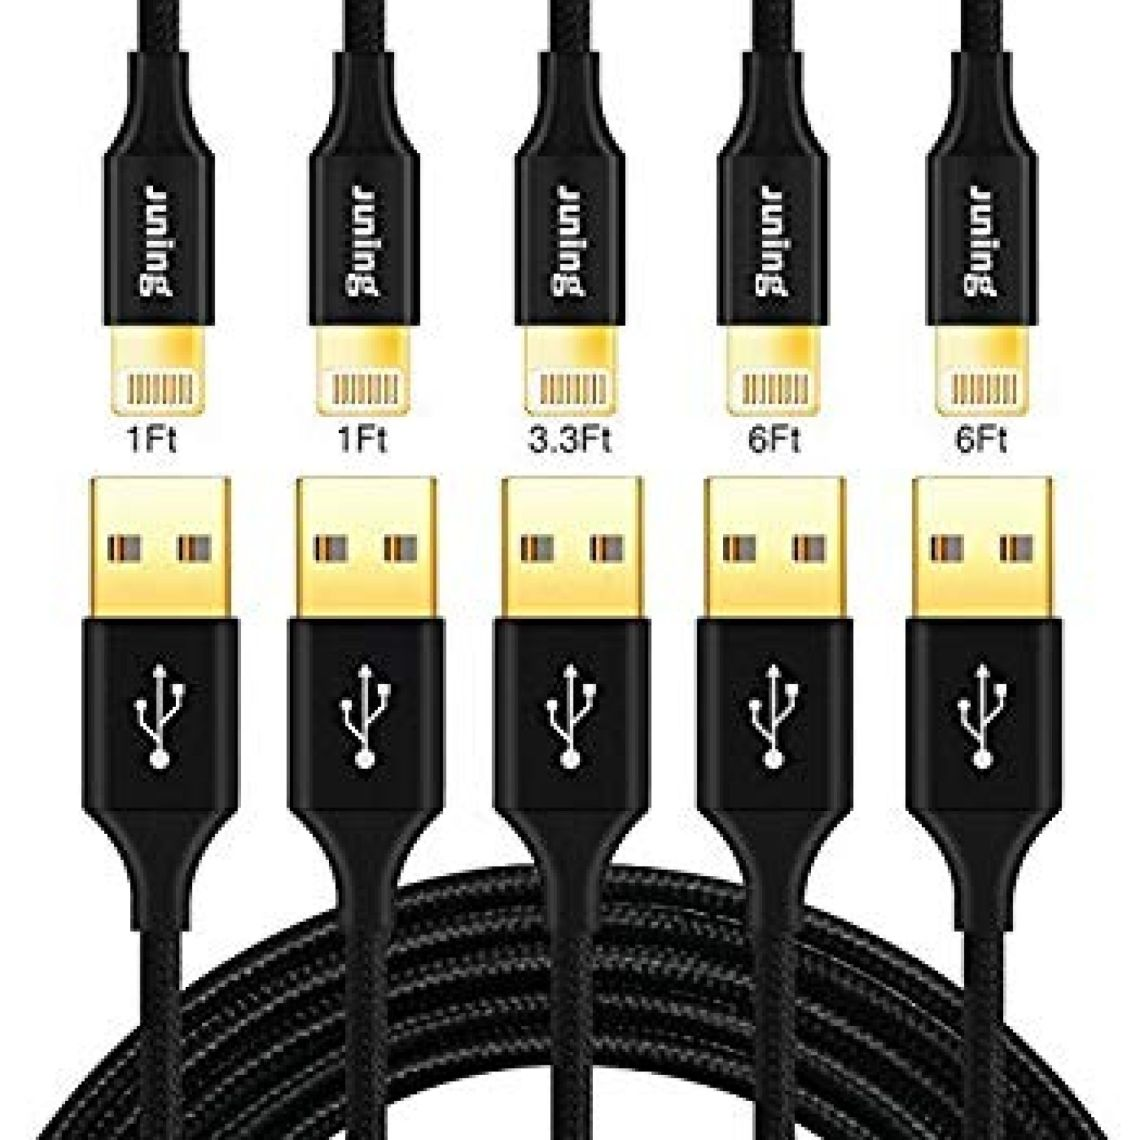 Amazon.com: JUNING Lightning Cable Nylon Braided iPhone Charger Cord 5Pack 2x1FT/1x3.3FT/2x6FT Fast Charging, Lightning Connector to Data Syncing, Compatible with iPhone X/8/8P/7/7P/6P/6s/6s+/5/5s/SE, iPad(Black): Computers & Accessories